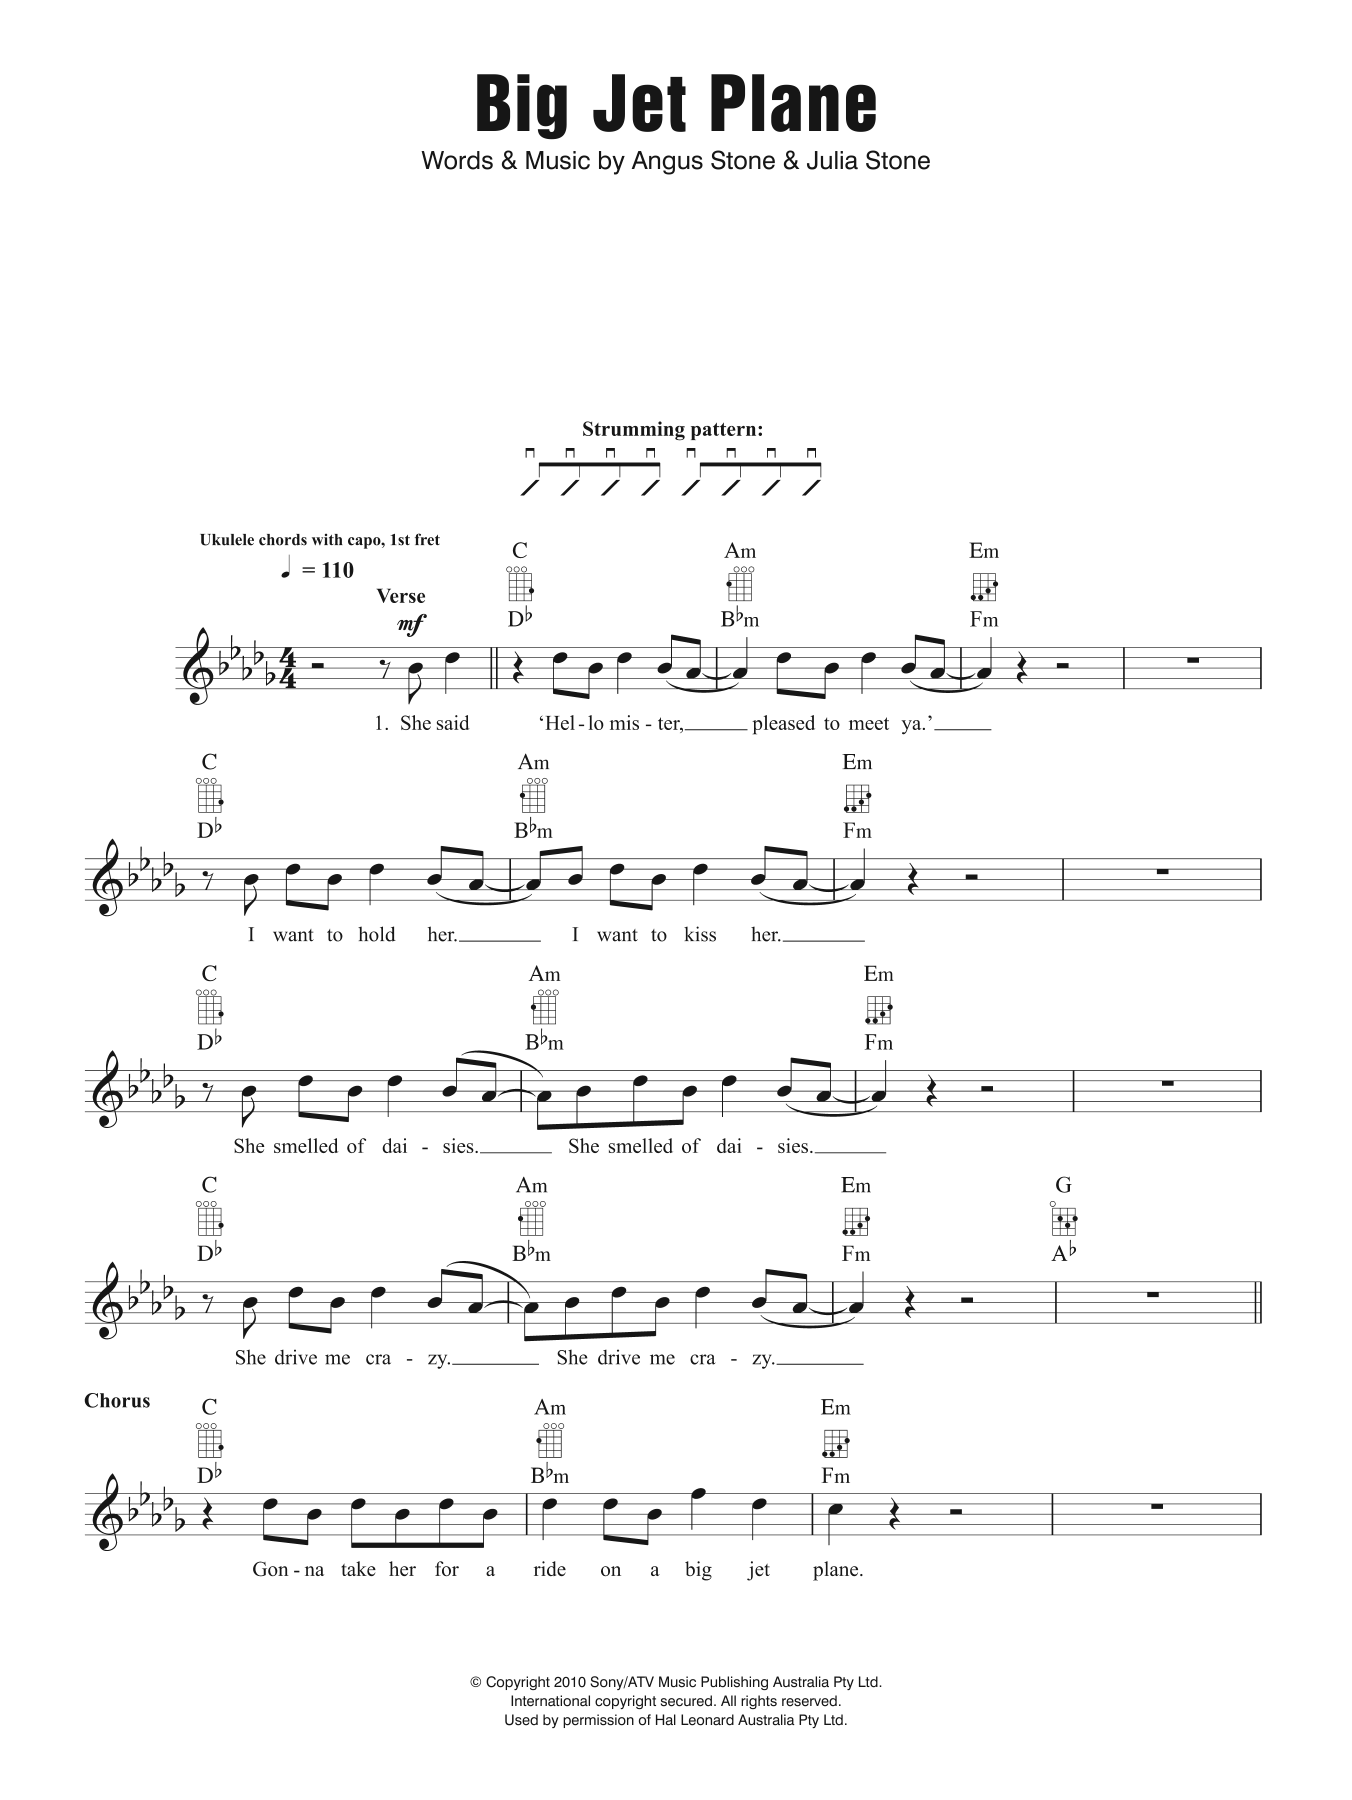 Big Jet Plane Sheet Music